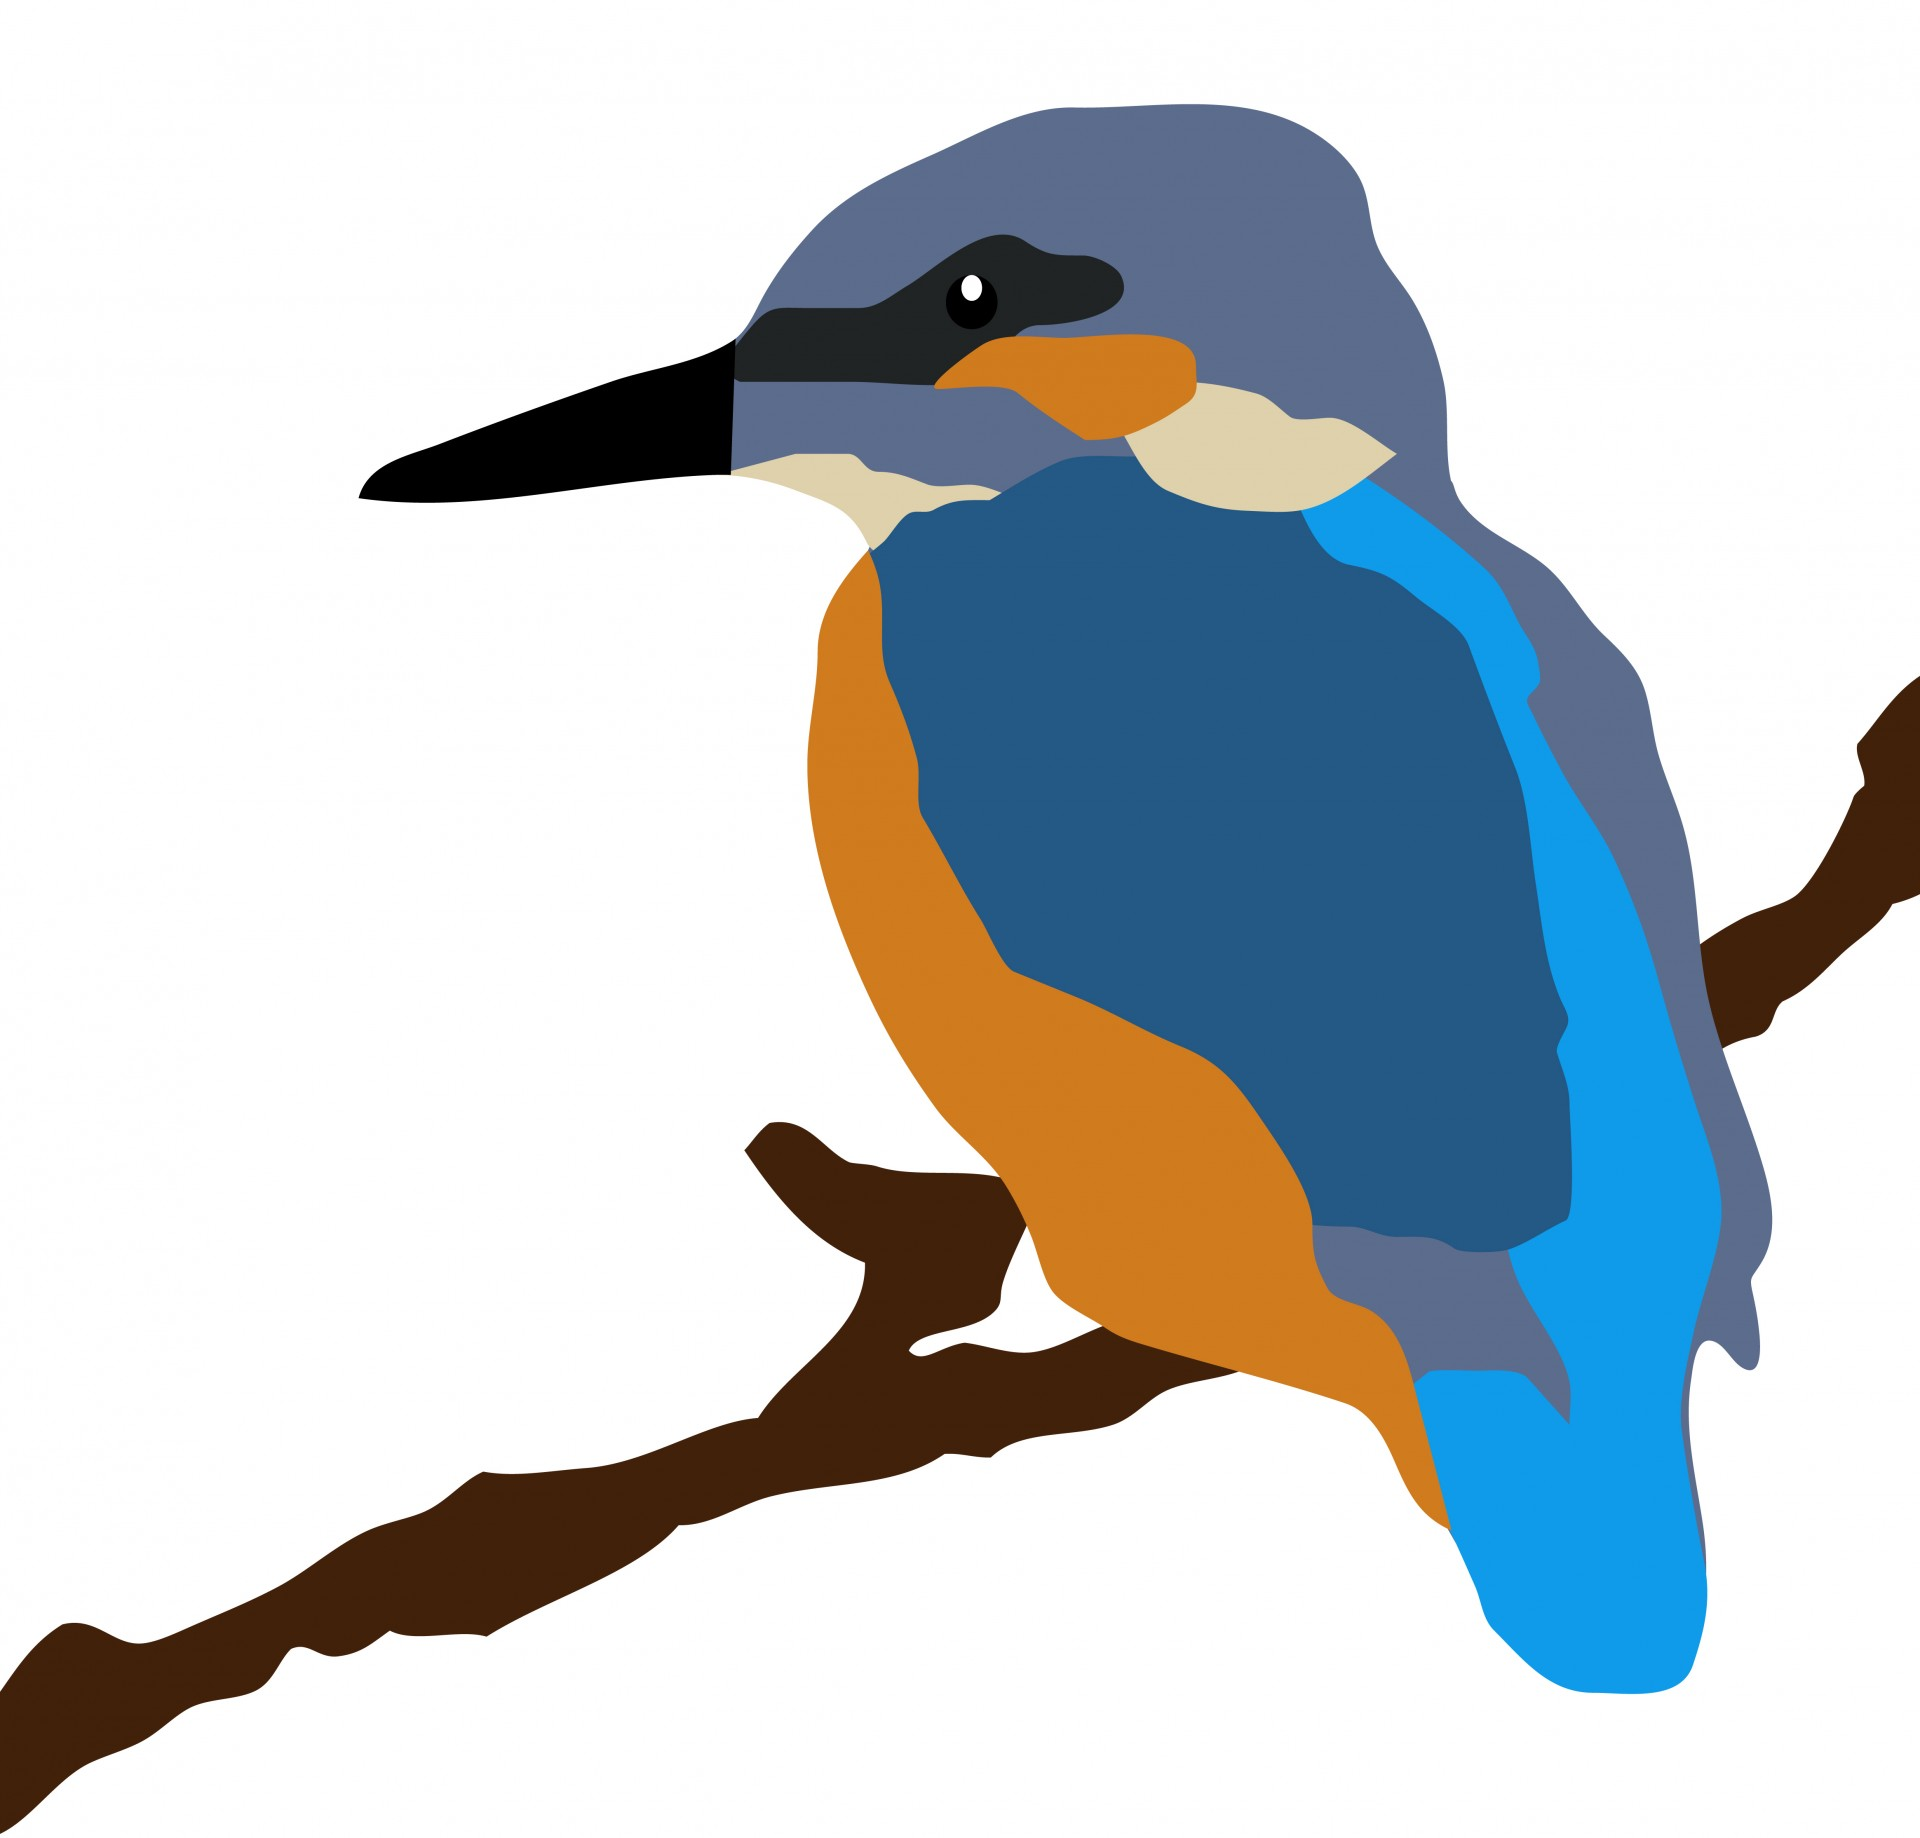 Kingfisher Bird On Branch Free Stock Photo.